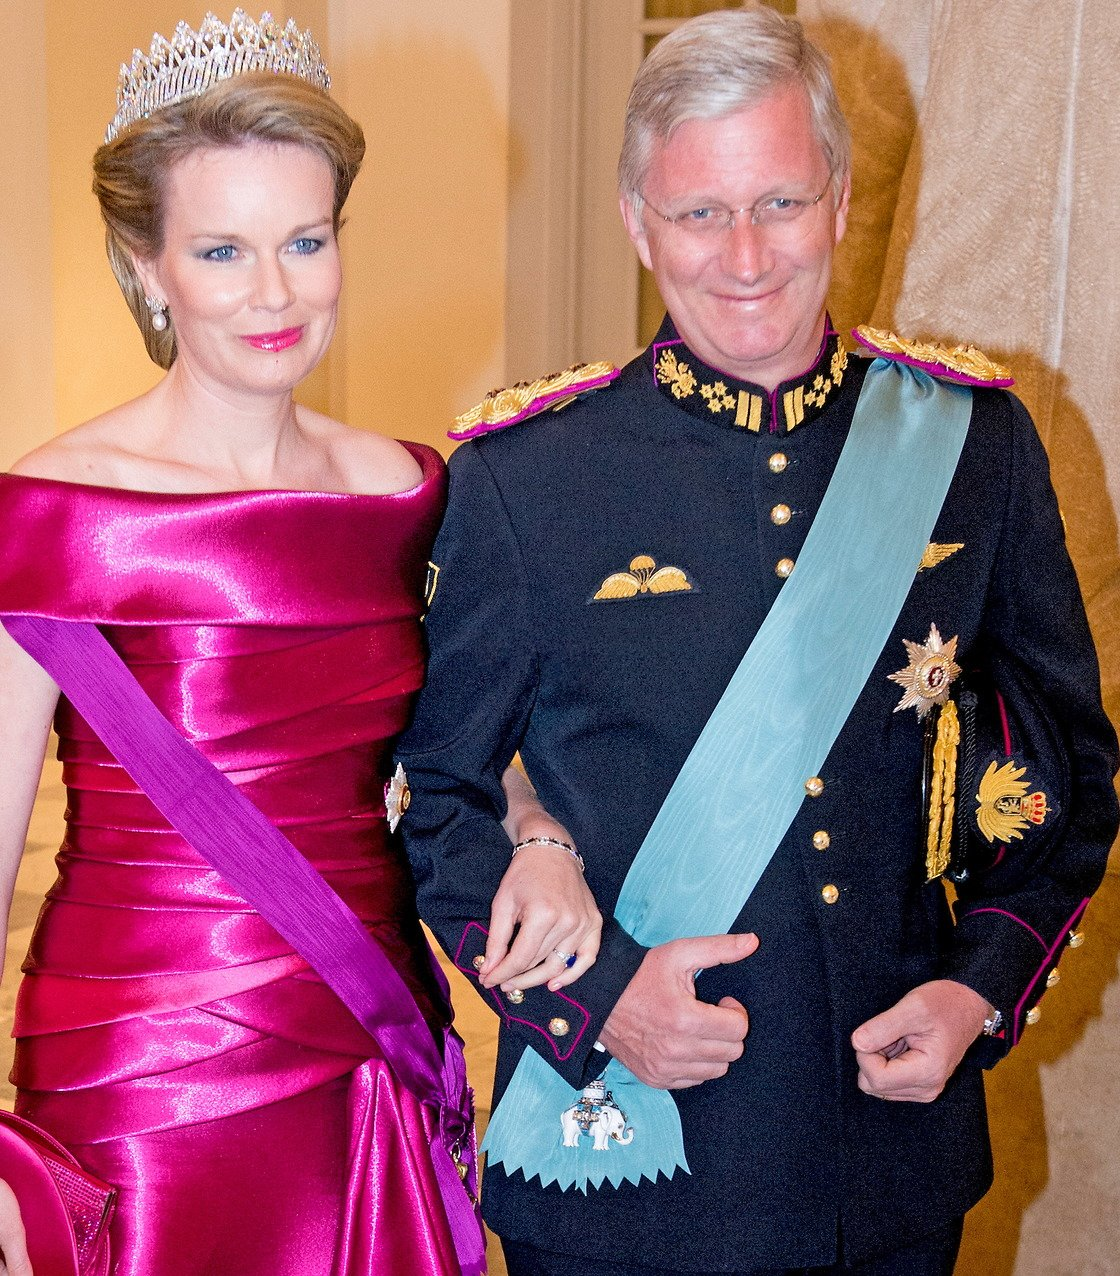 Gala Dinner In Honor Of Queen Margrethe S 75th Birthday At